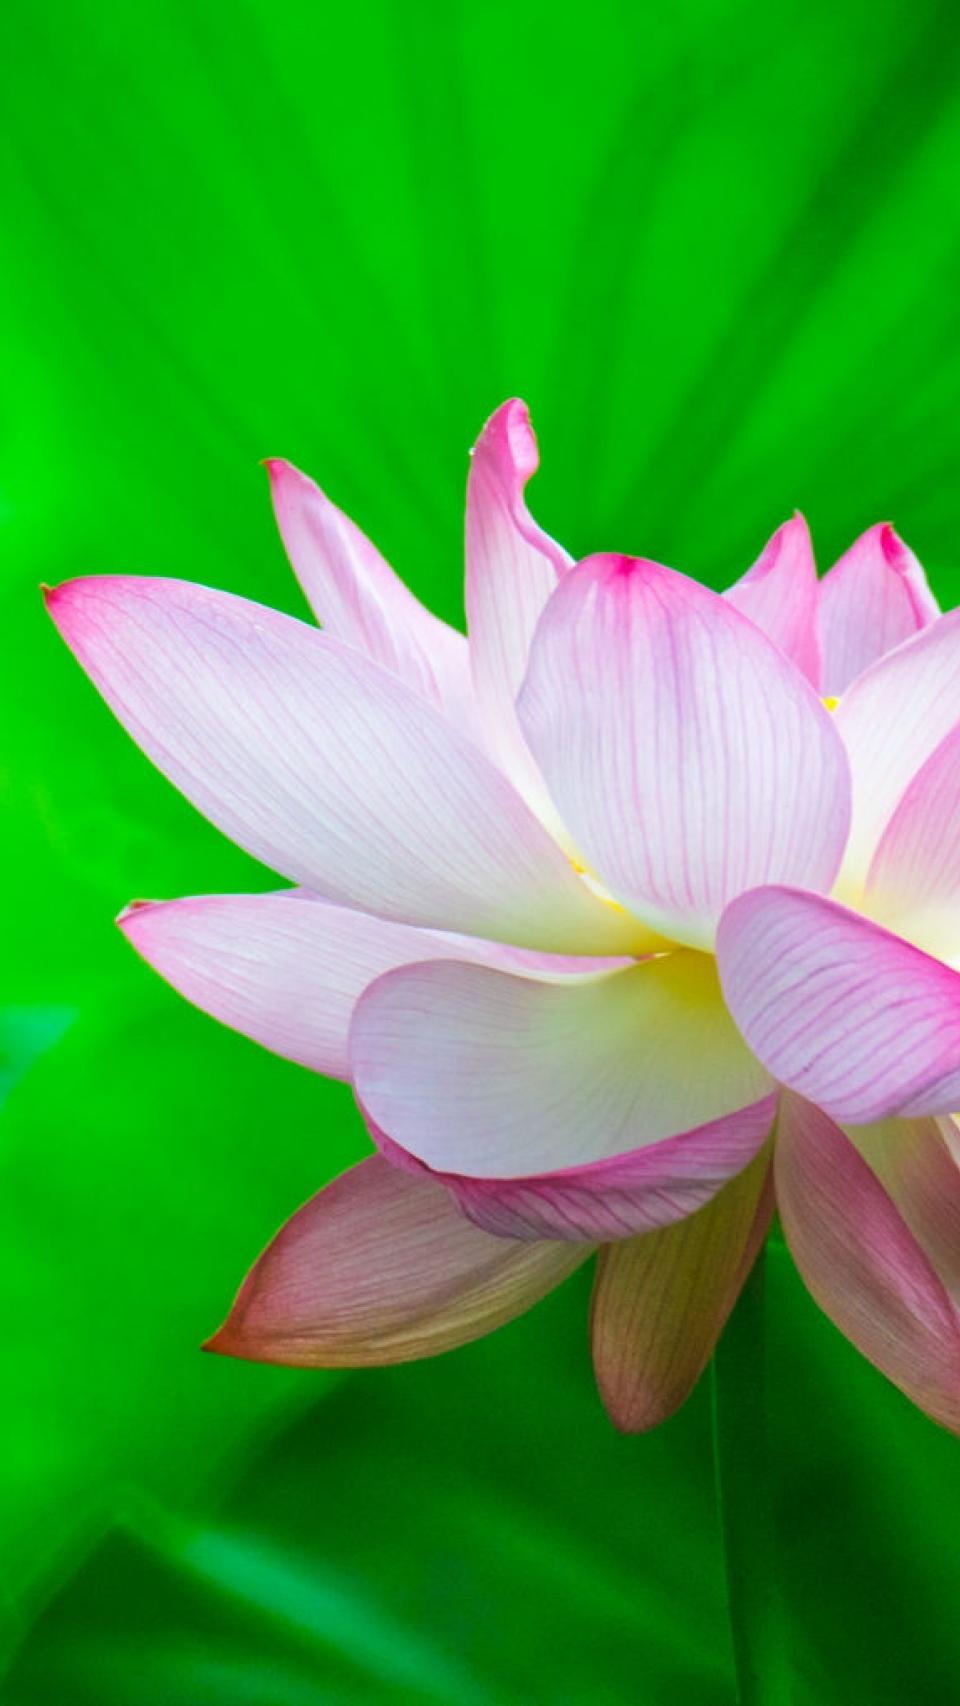 Lotus flower wallpaper hd by aotaro 1 tablet wallpaper lotus flower wallpaper hd by aotaro mightylinksfo